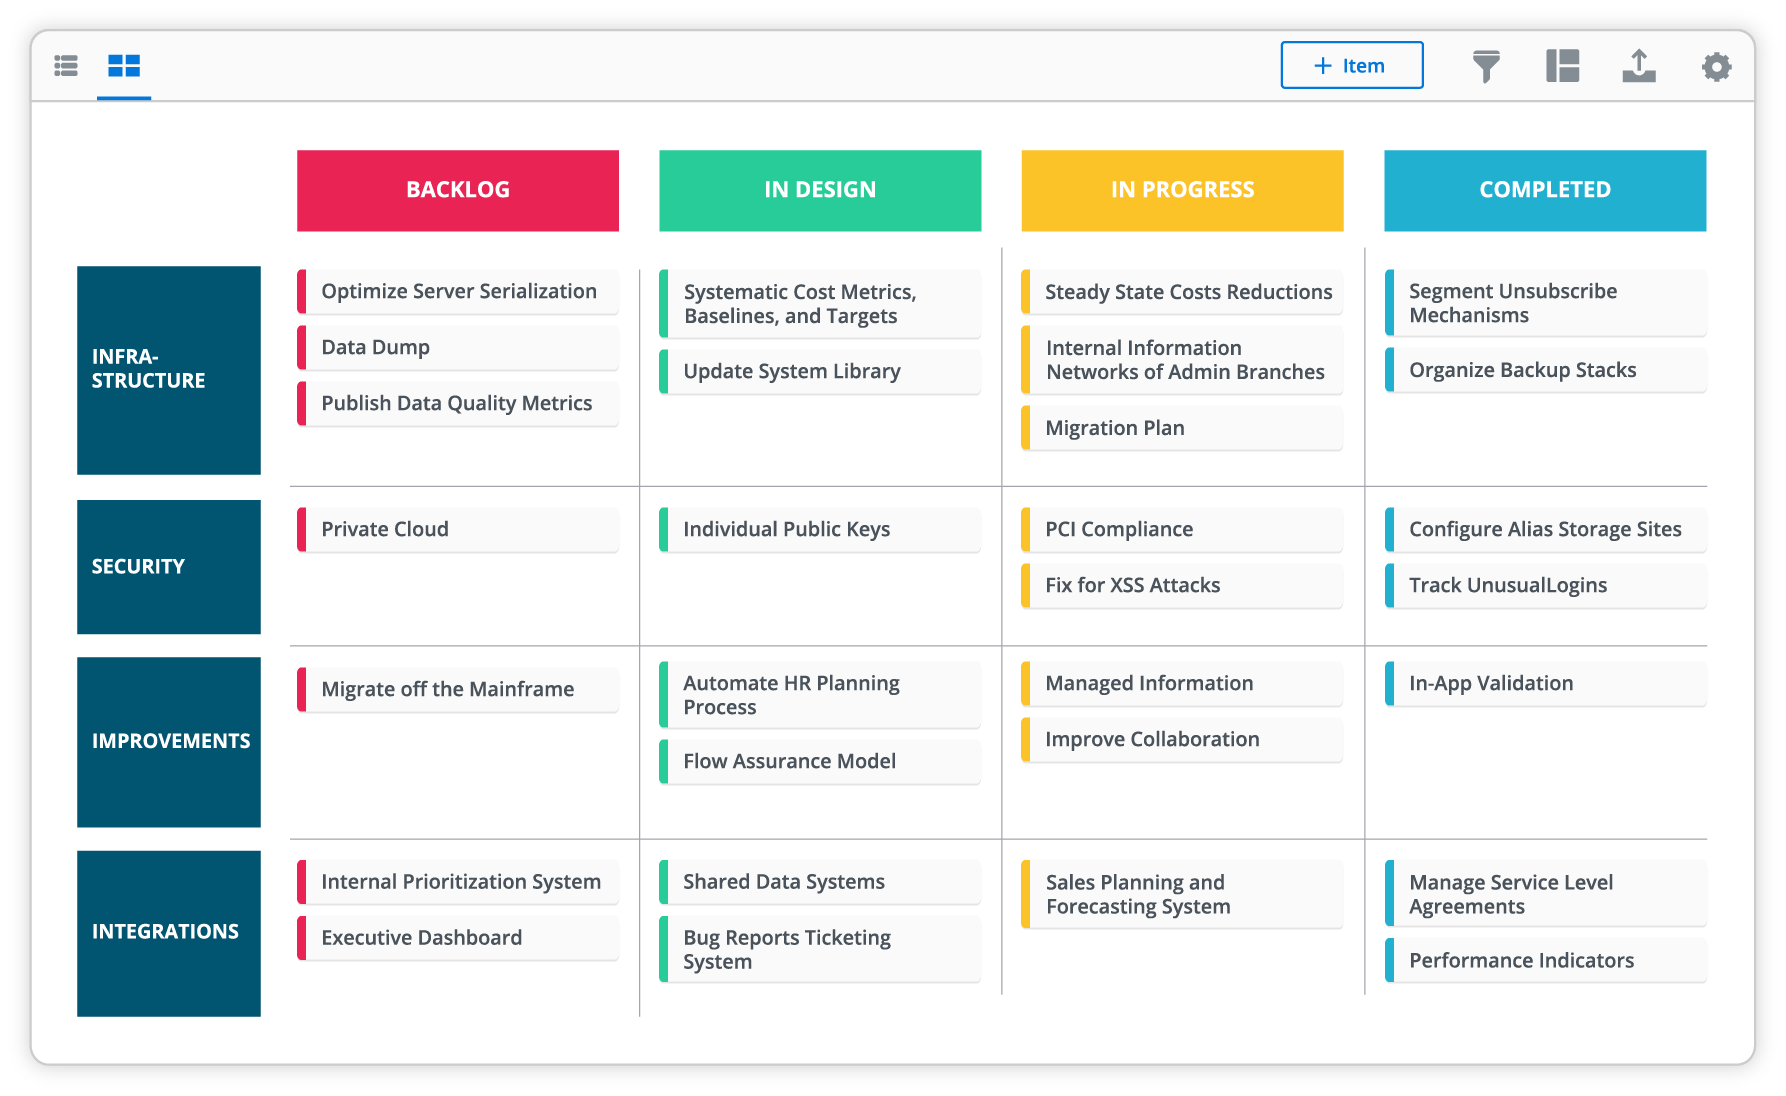 Swimlane It Roadmap A Flexible Framework To Track Progress On Your It Objectives Quickly See What S Upcom Technology Roadmap Roadmap Organizational Alignment